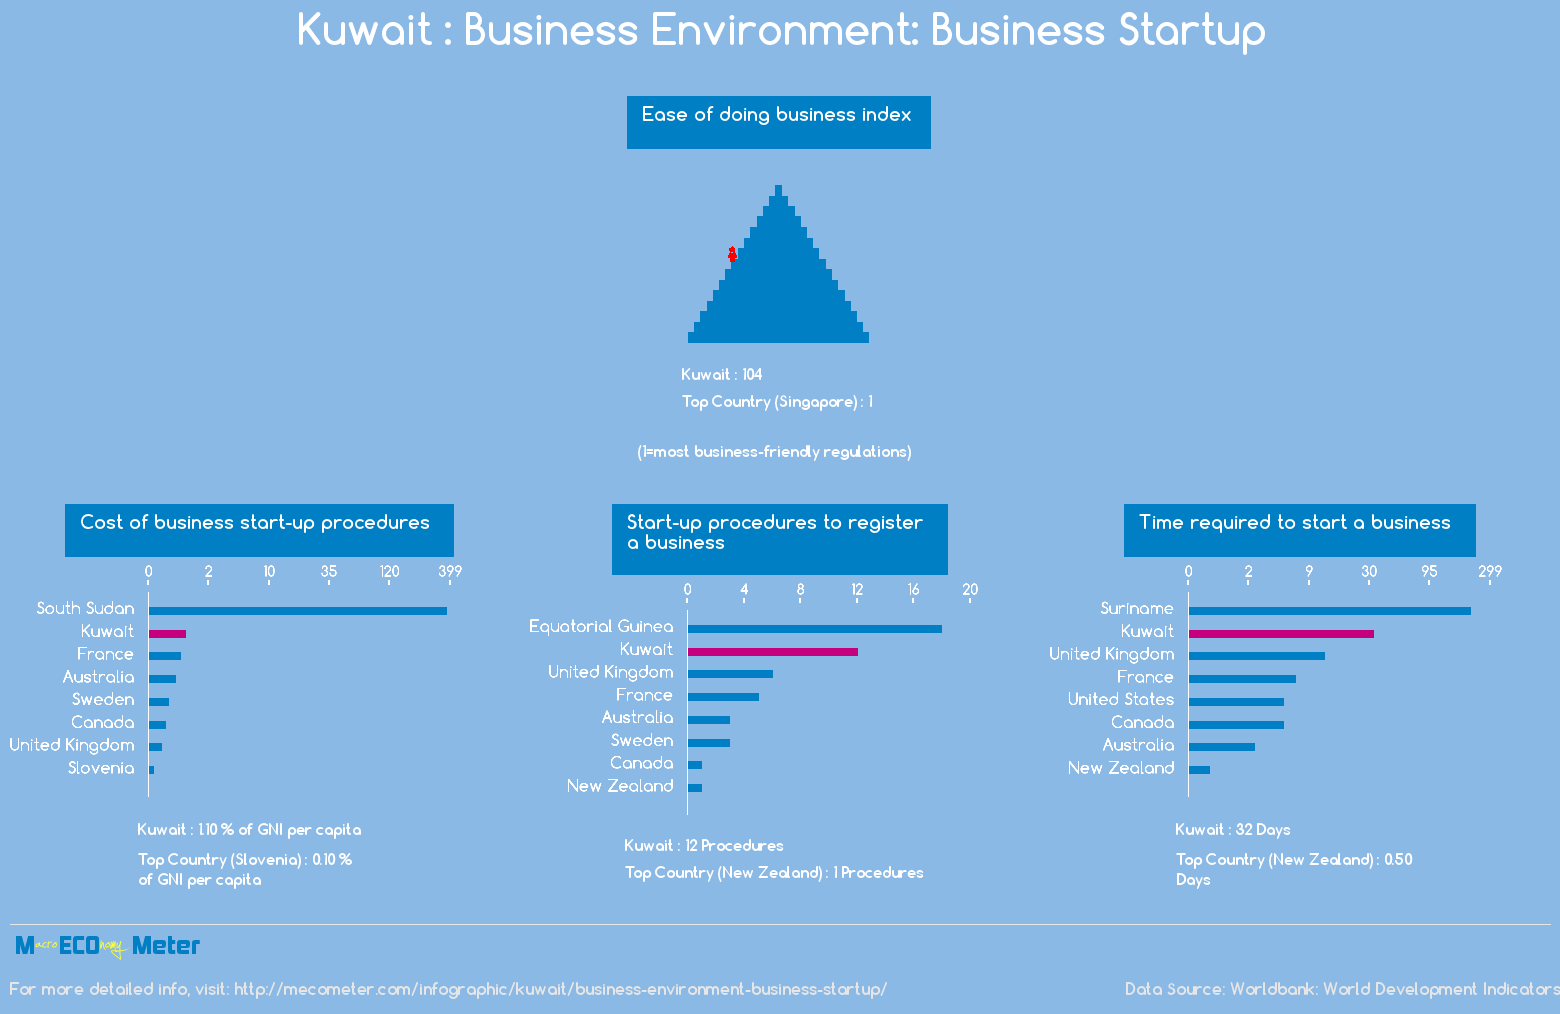 Kuwait : Business Environment: Business Startup